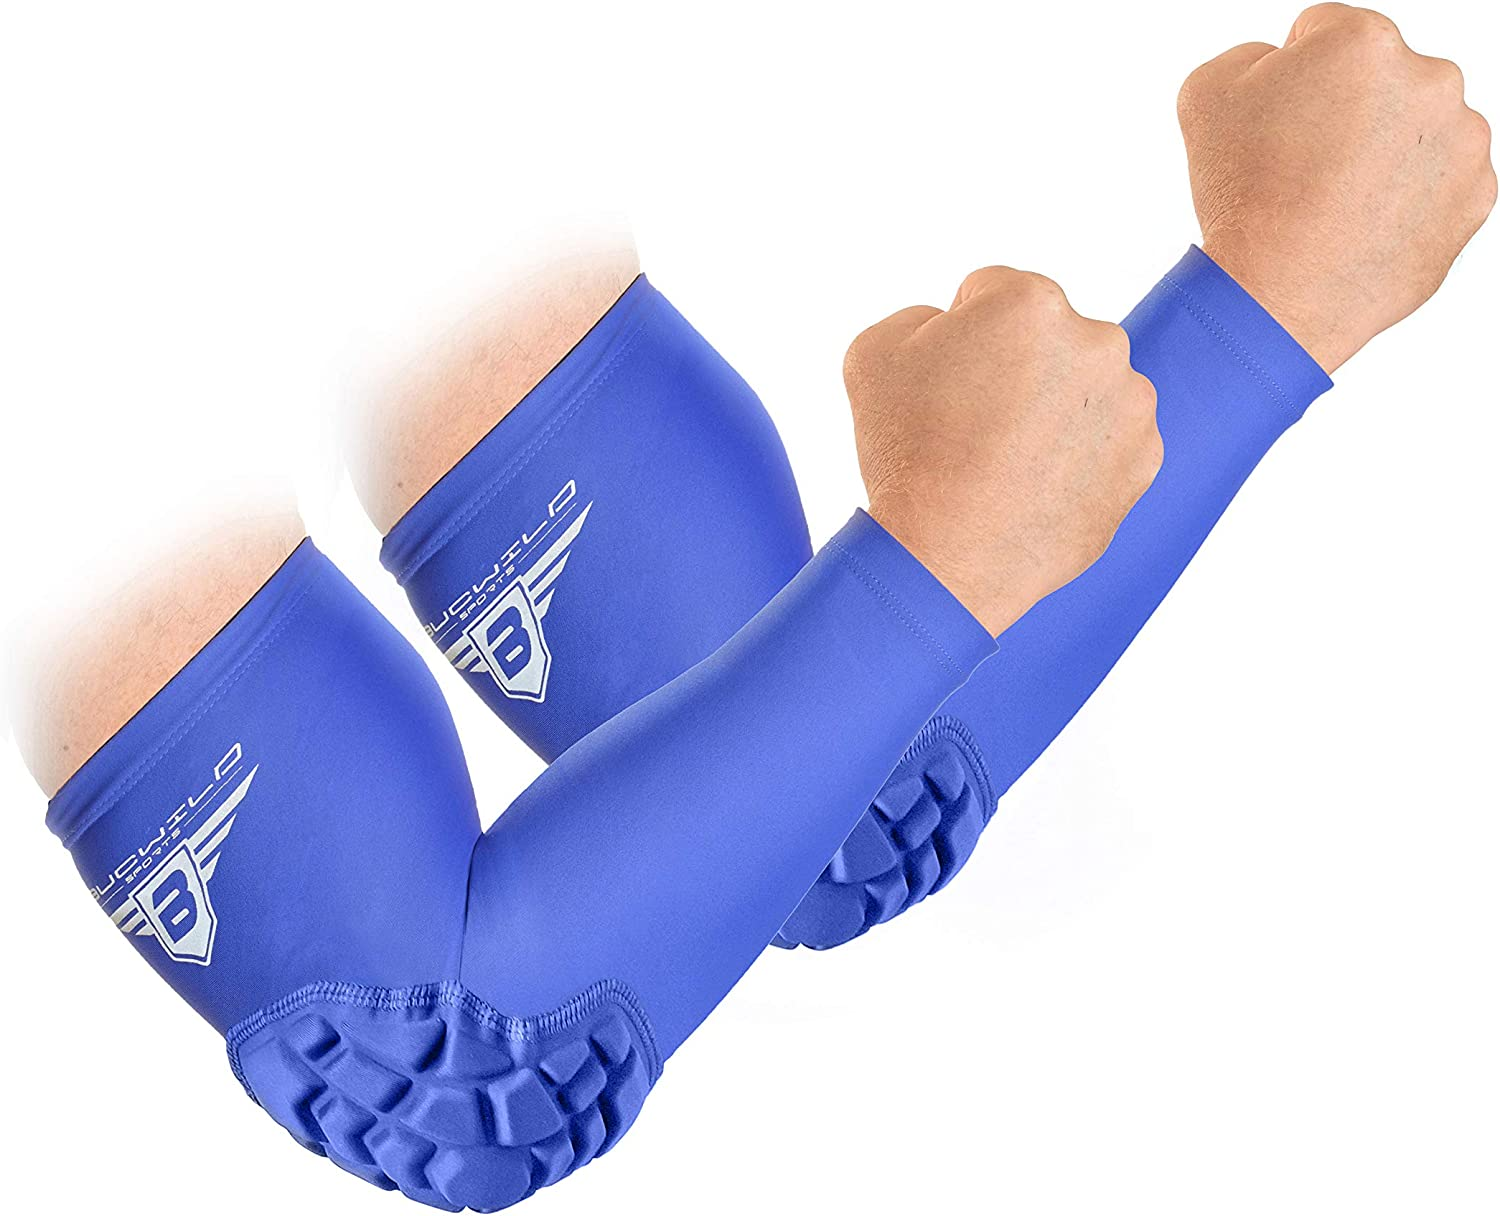 Bucwild Sports Padded Elbow Arm Sleeves for Basketball Football Volleyball Youth & Adult Size Pads (1 Pair) : Clothing